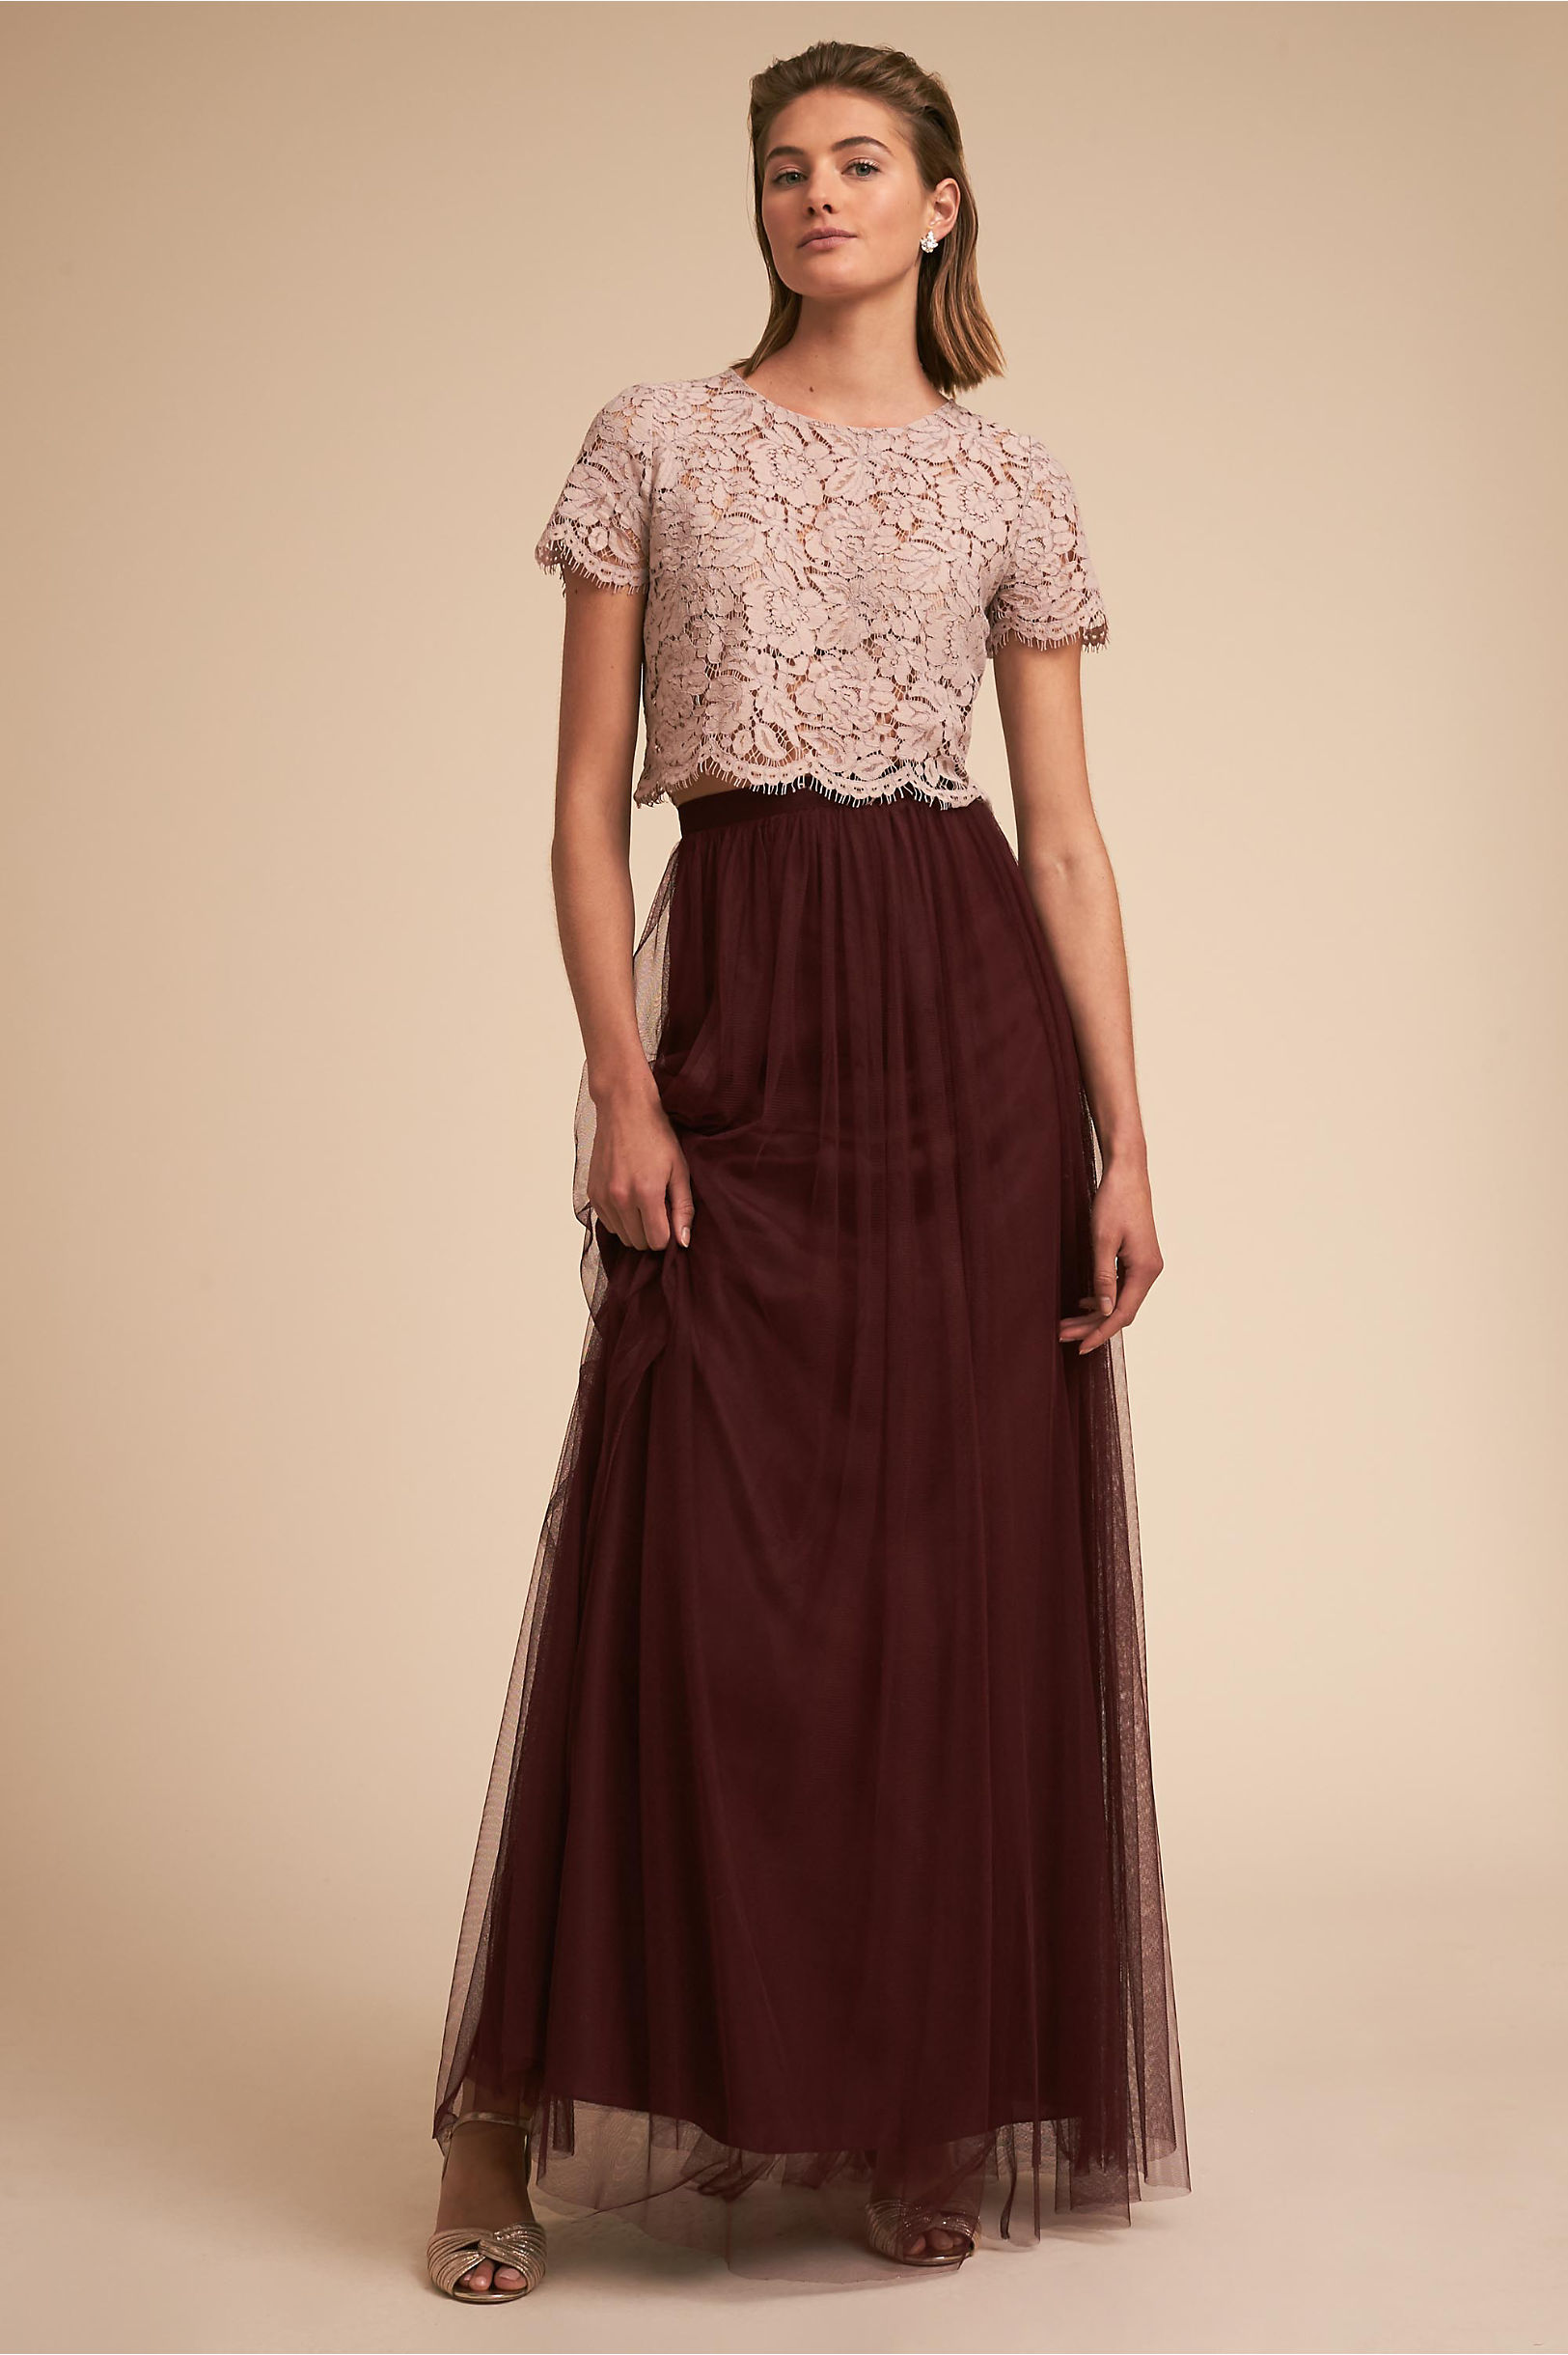 Burgundy red wine colored bridesmaid dresses bhldn kenzie top louise tulle skirt ombrellifo Gallery